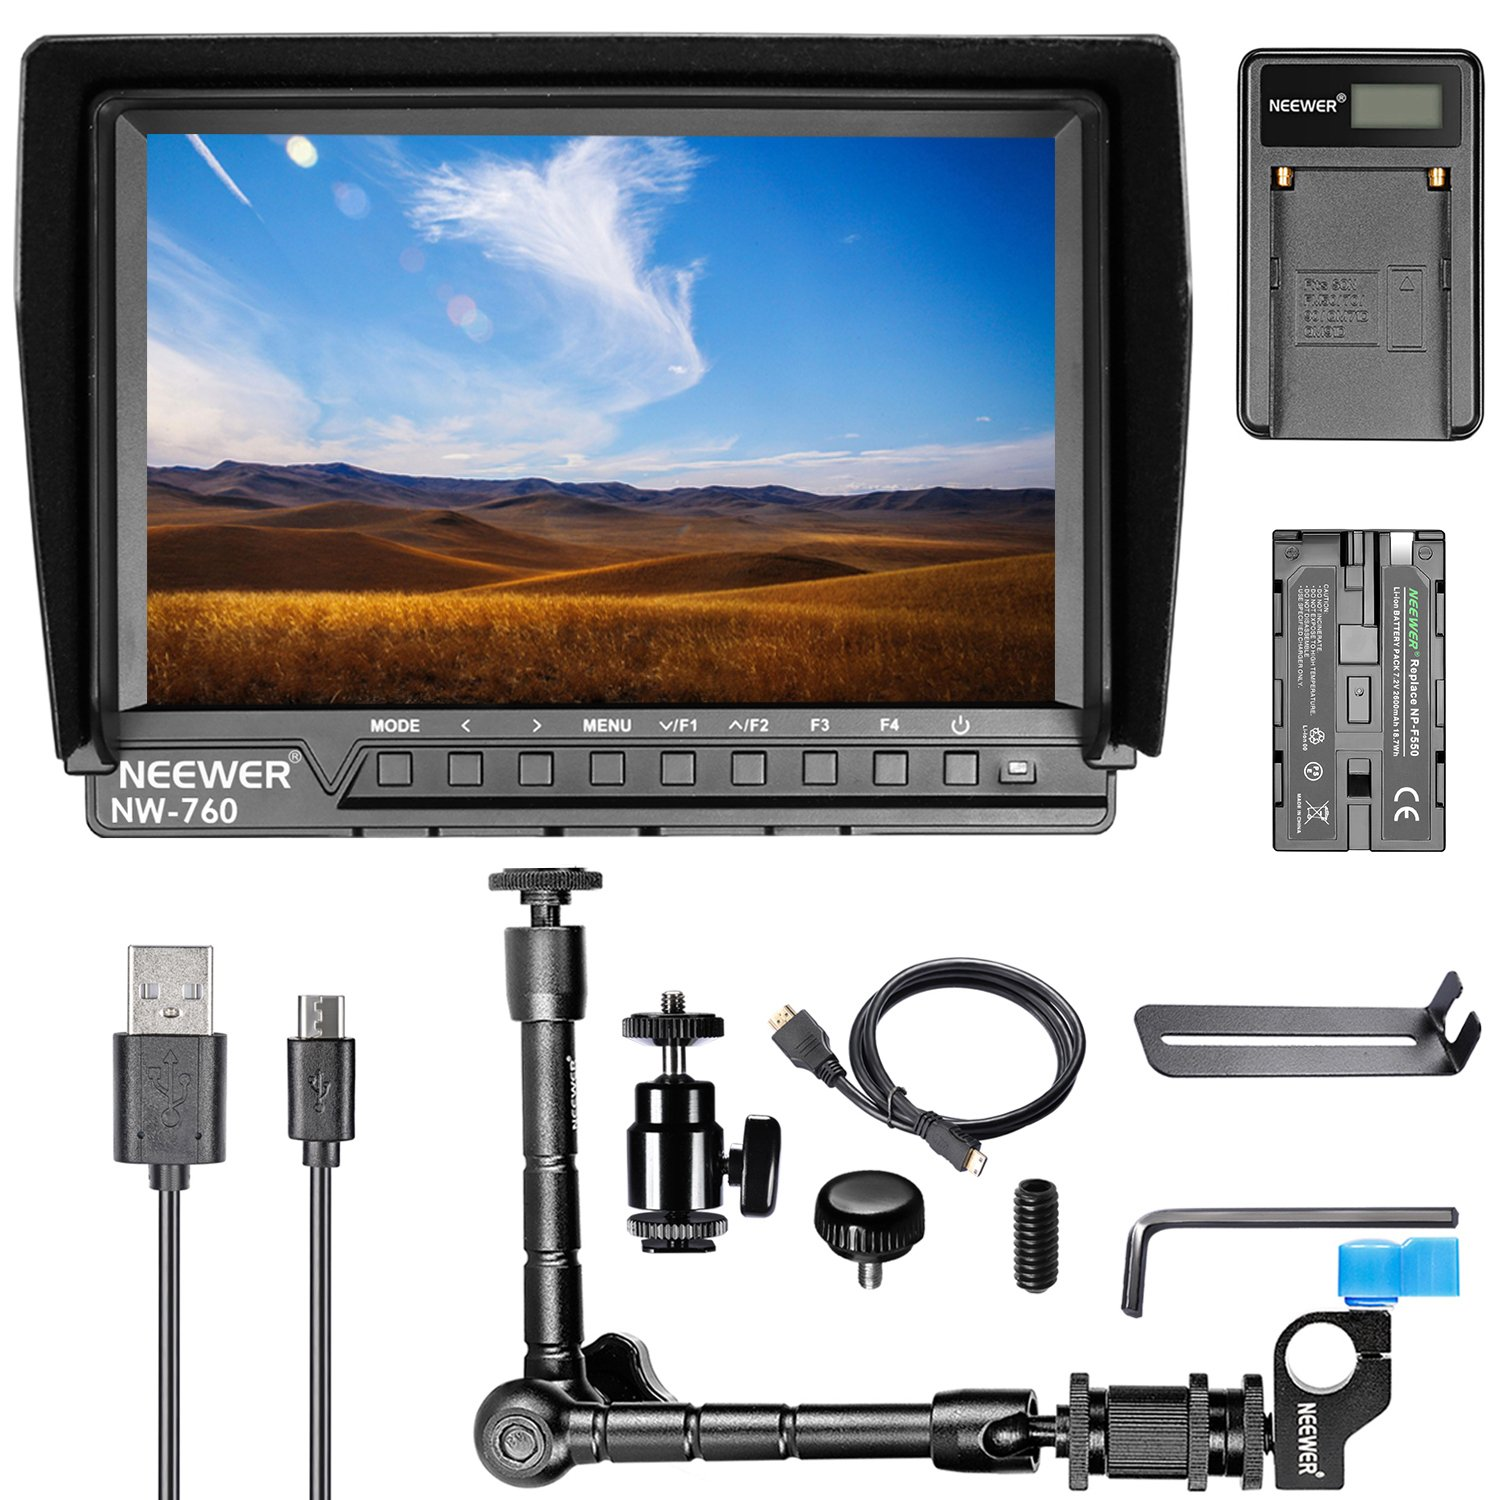 Neewer NW-760 7 inches Full HD 1920x1200 IPS Screen Camera Field Monitor Kit for Sony Canon Nikon Olympus Pentax Panasonic,Include NW-760 Monitor,Magic Arm,USB Battery Charger,F550 Replacement Battery by Neewer